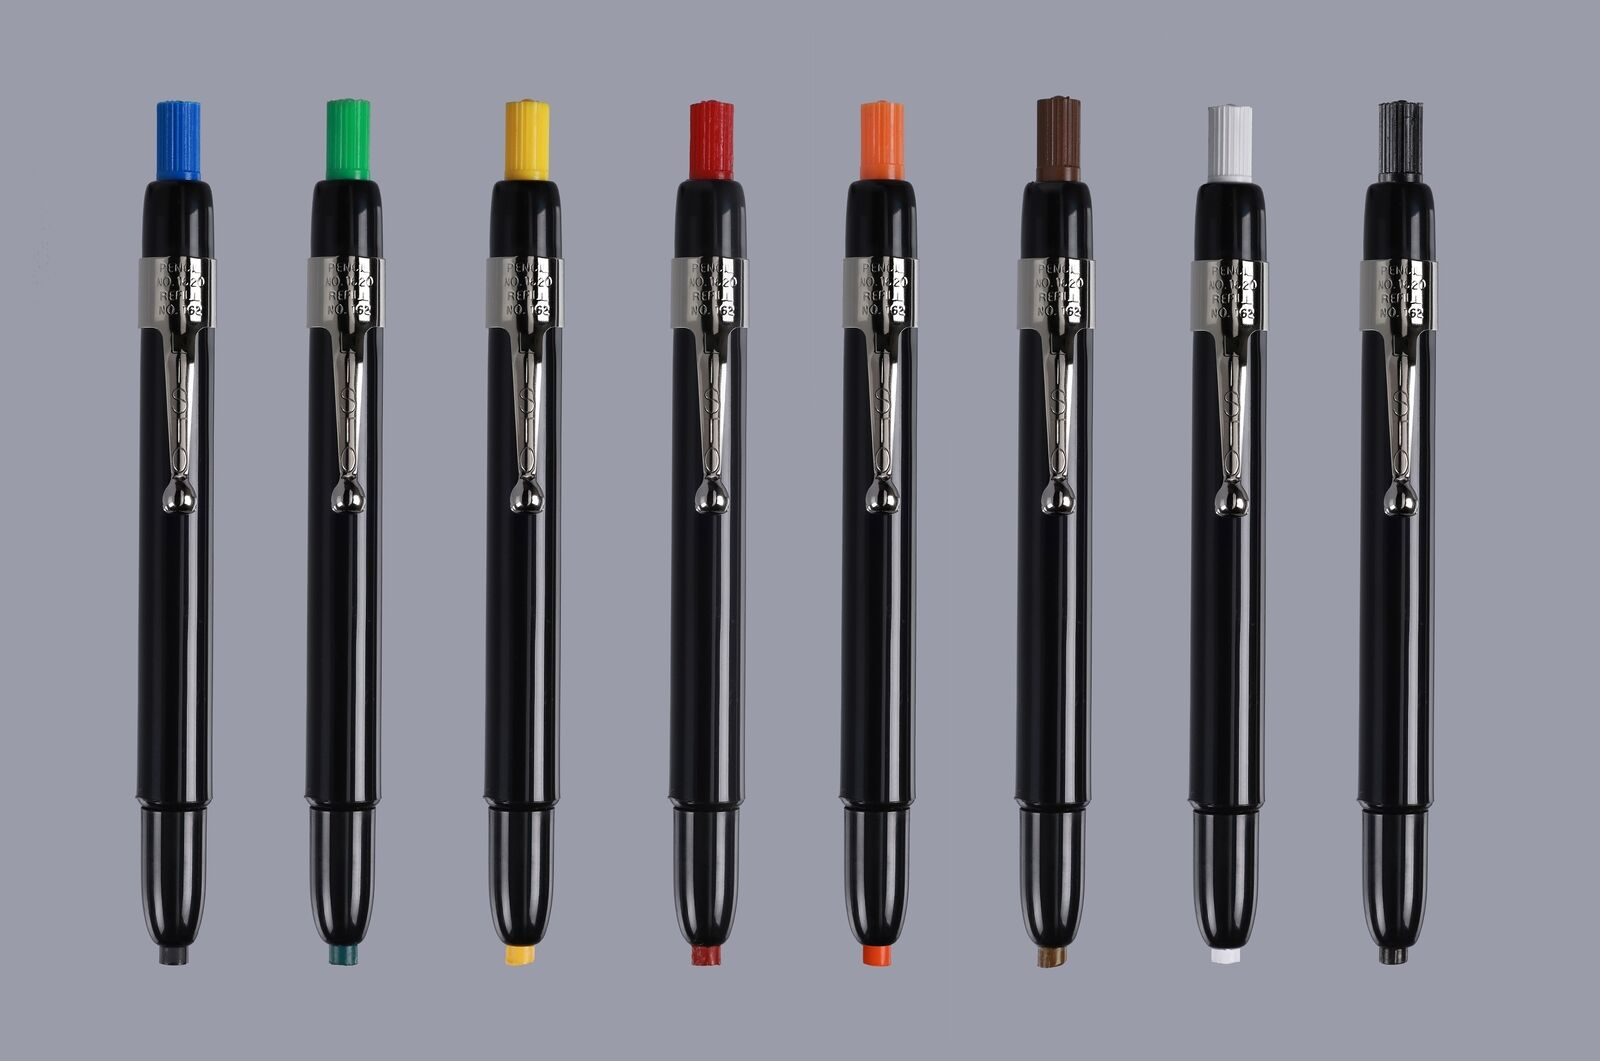 Color: Yellow Grease Pencils//China Marking Pencils//Wax Pencils 72 Refill Leads Listo 1620 and 162 Marking Pencils Kit 12-Pencils, 72-Refills, Yellow 12 Pencils 1 x Orange Pencil Included.